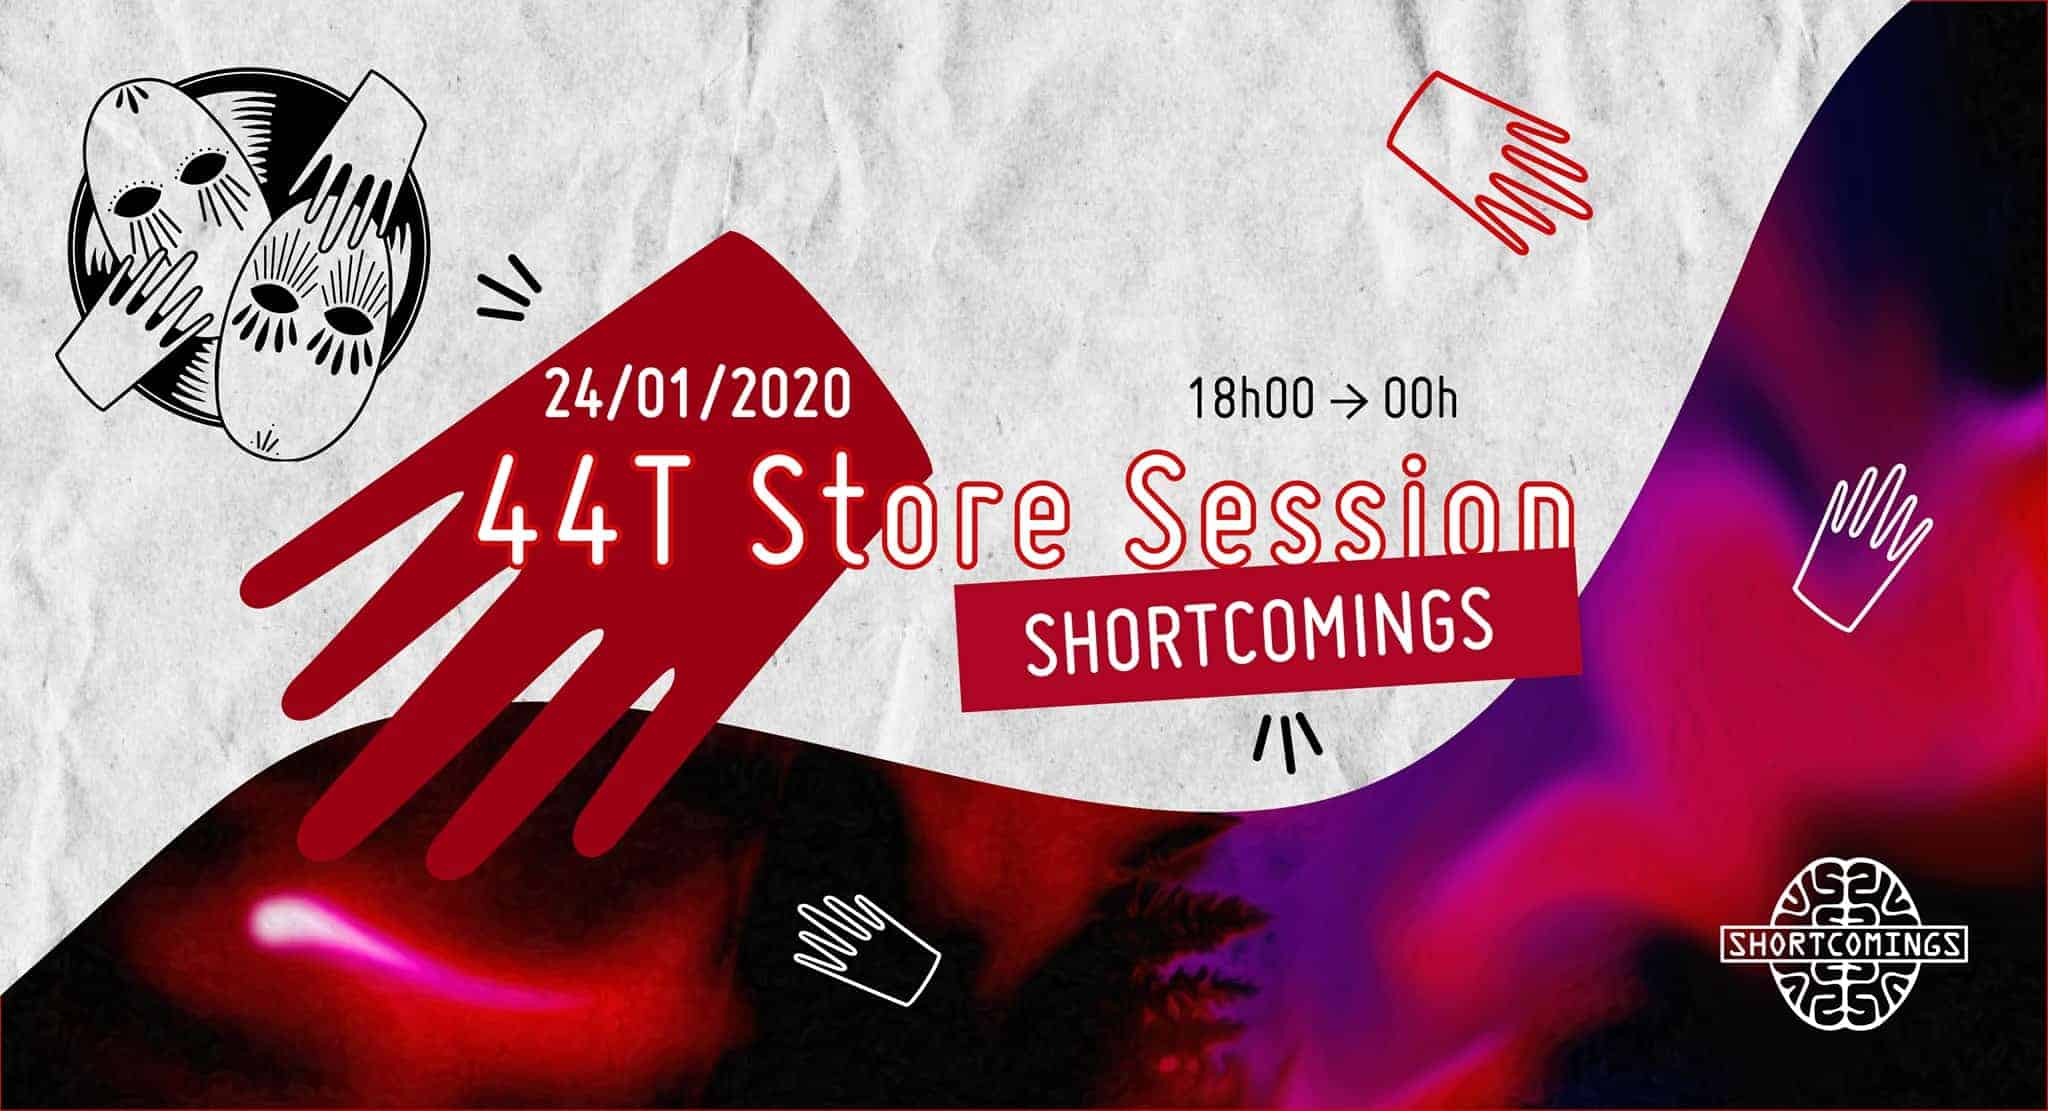 44 tours store session